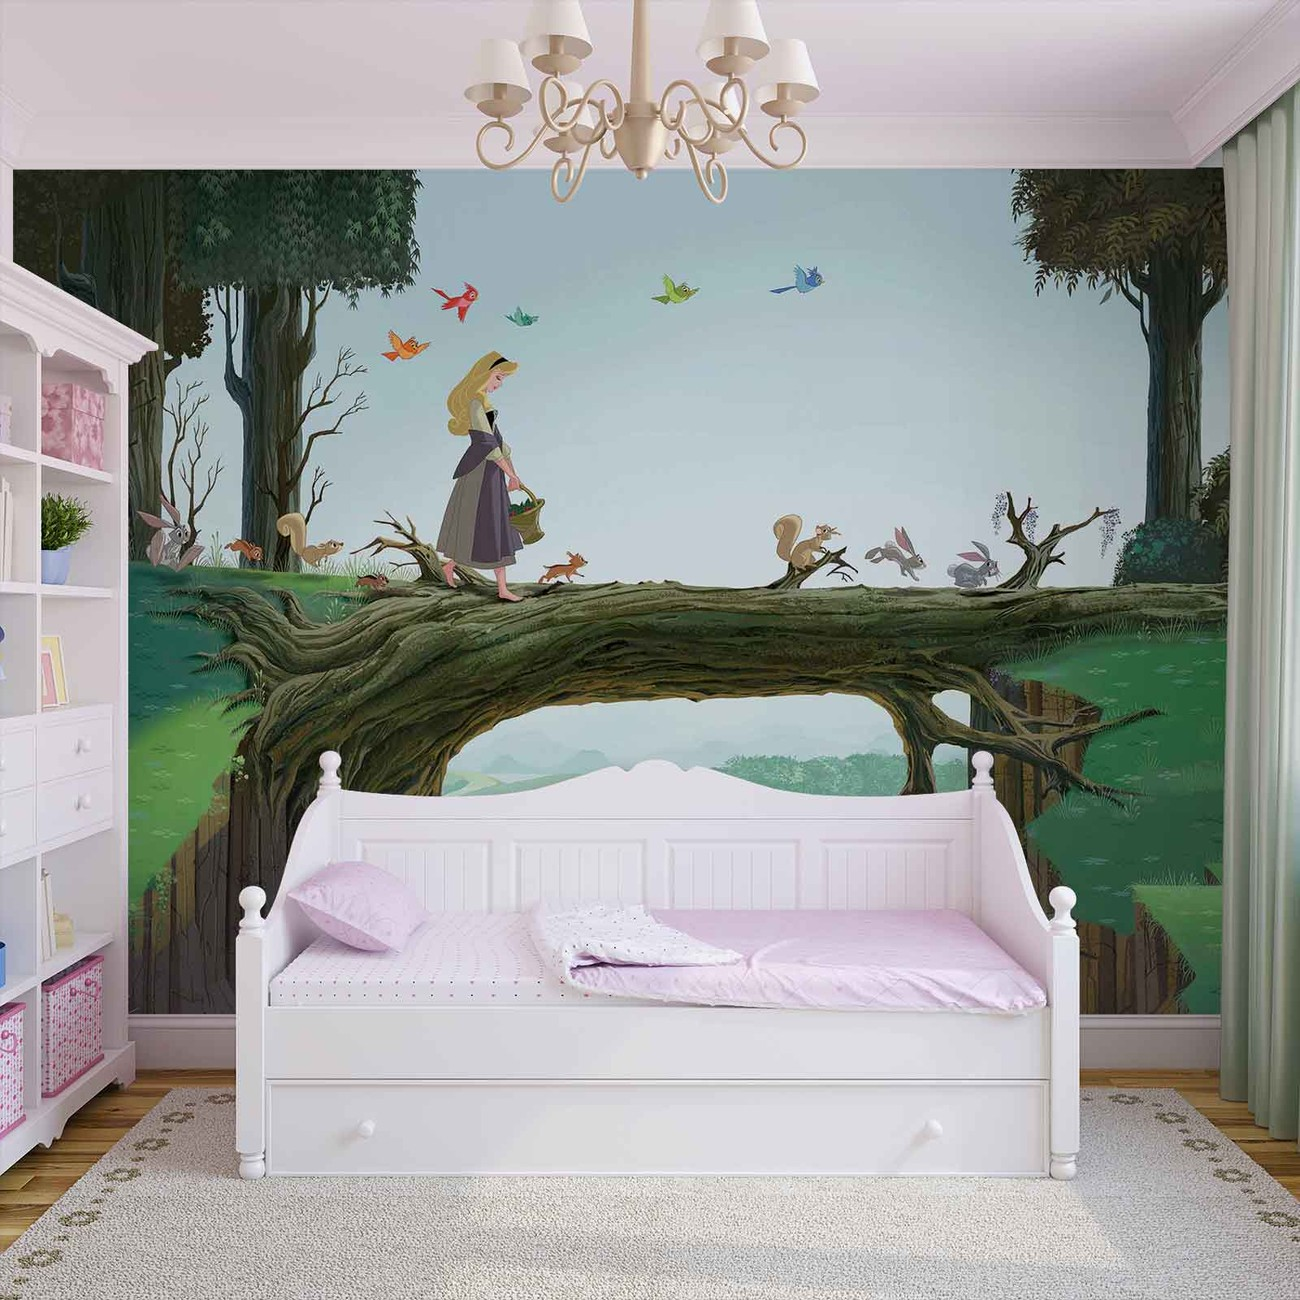 Disney princesses sleeping beauty wall paper mural buy for Disney princess wall mural tesco